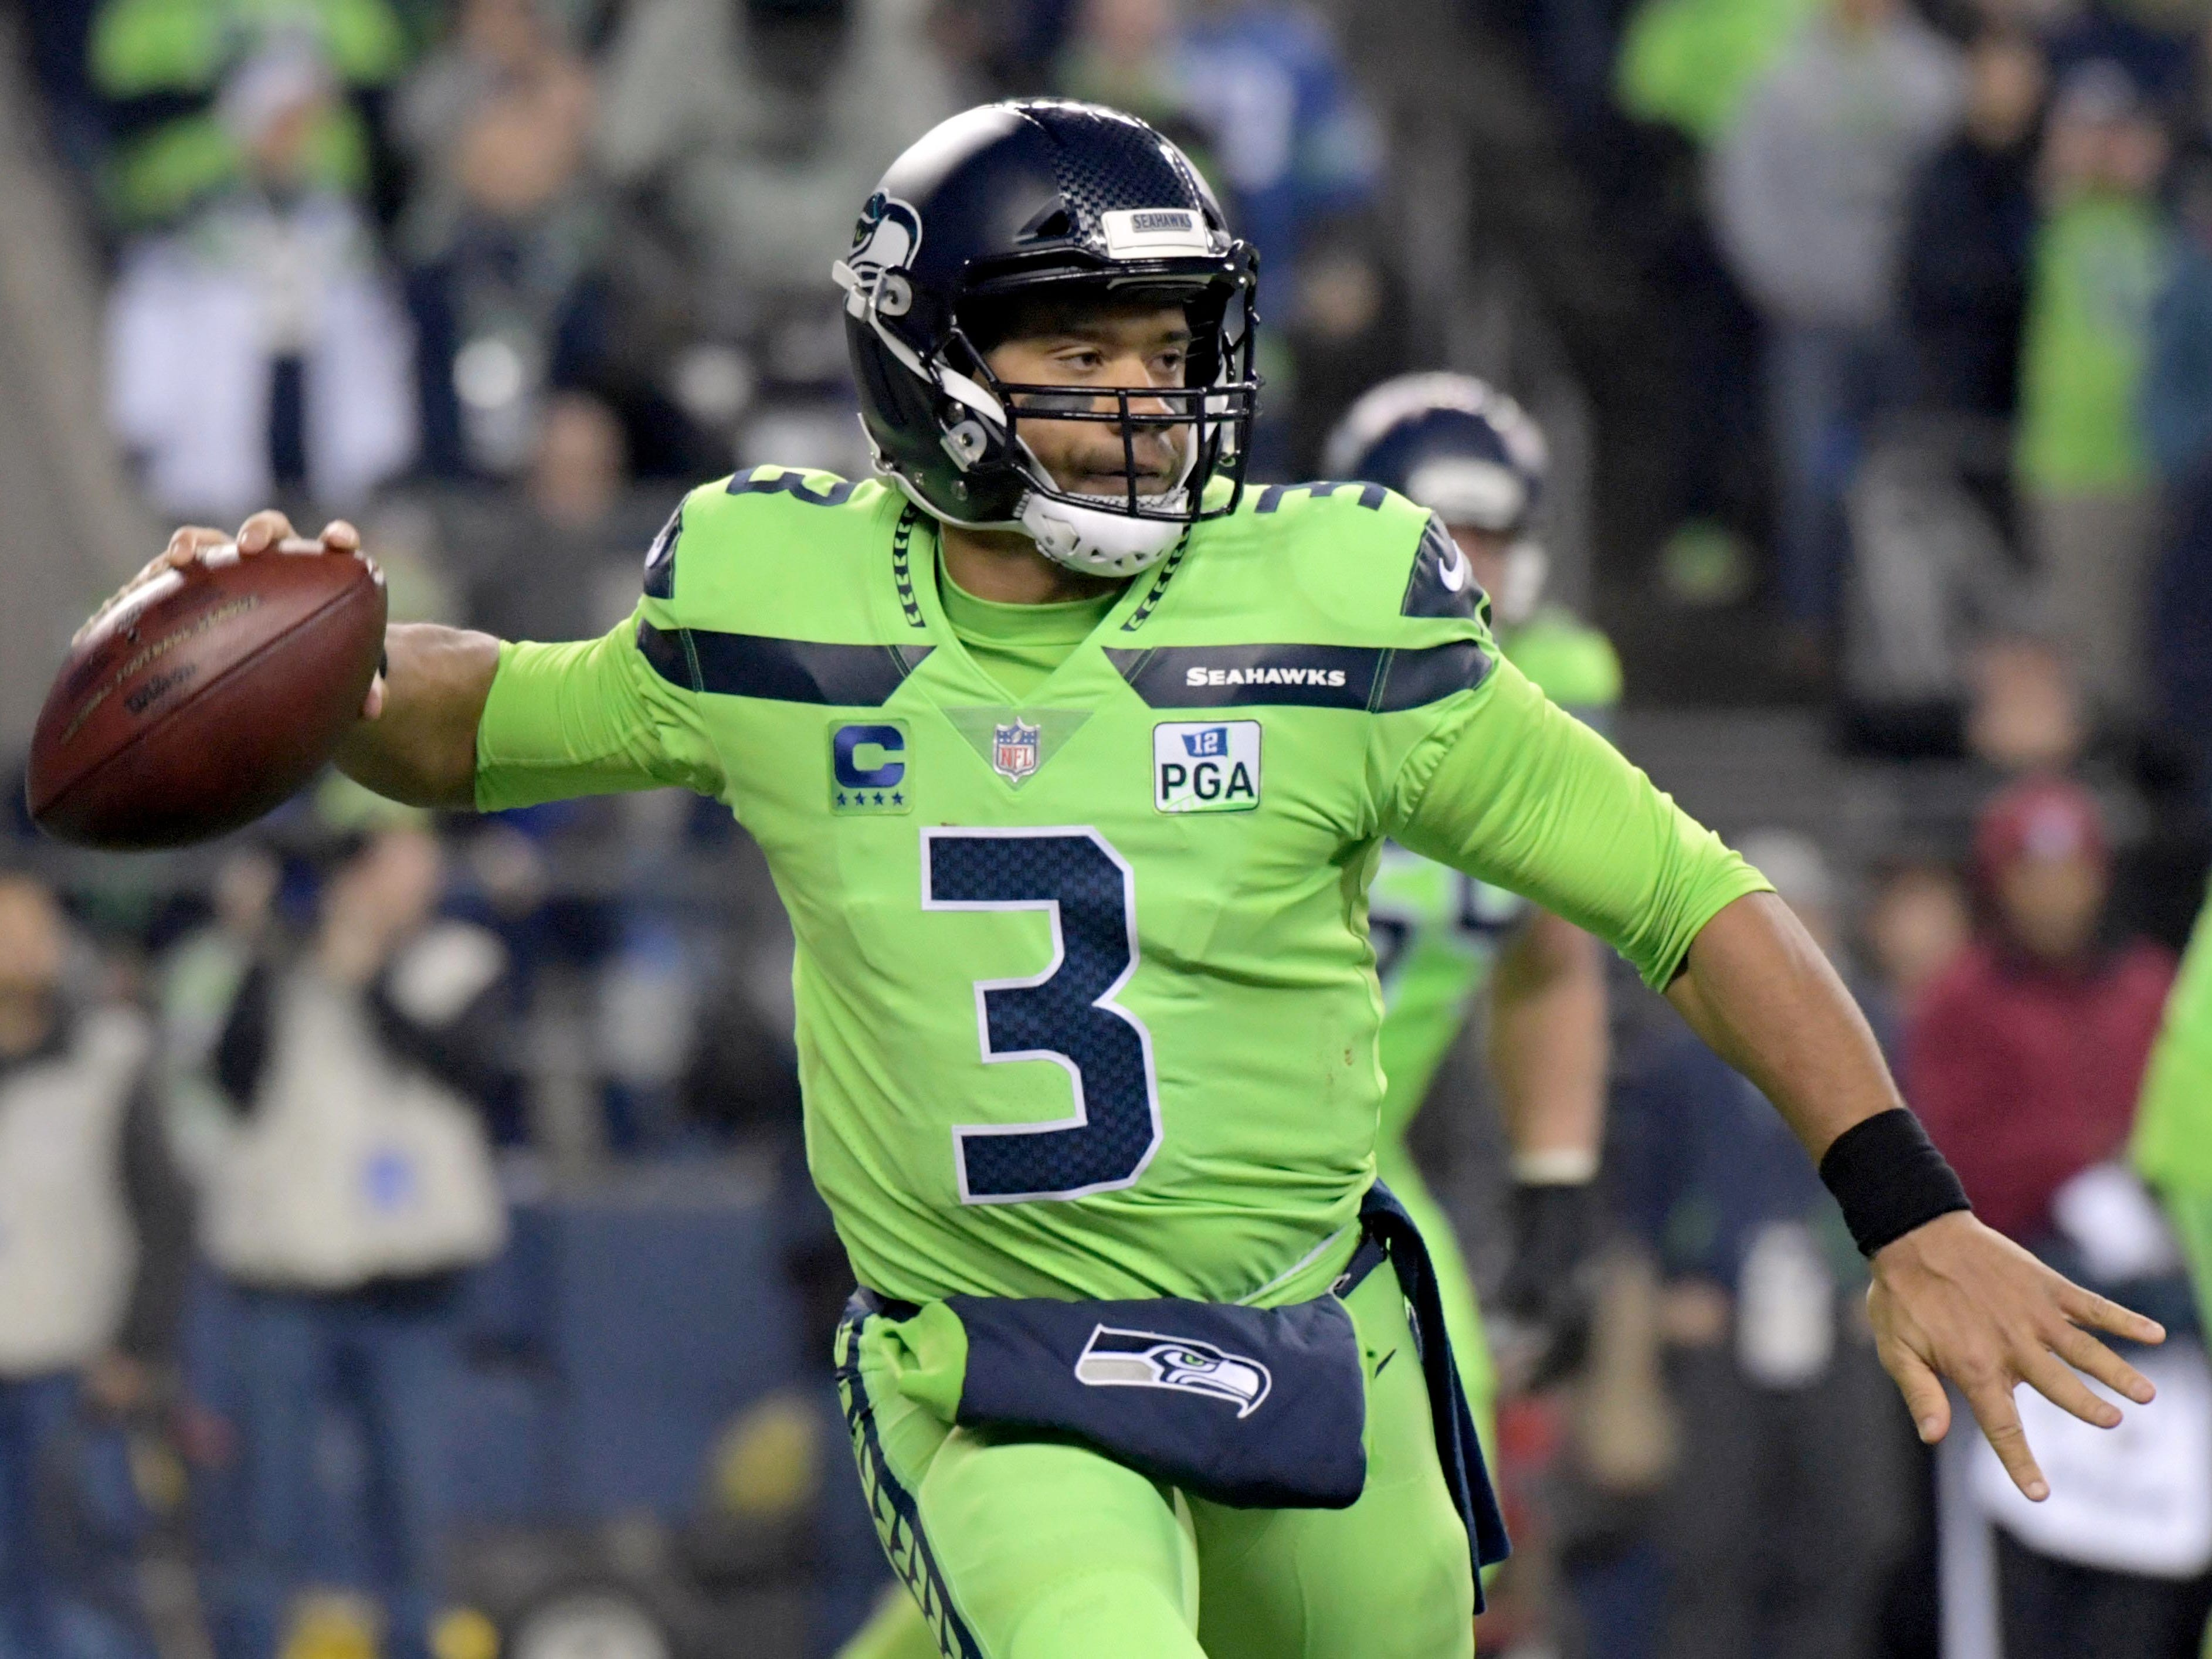 12. Seahawks (10): Can't fault decision to open vault for Russell Wilson, but Seattle may take step back as it waits for influx of rookies to assimilate.